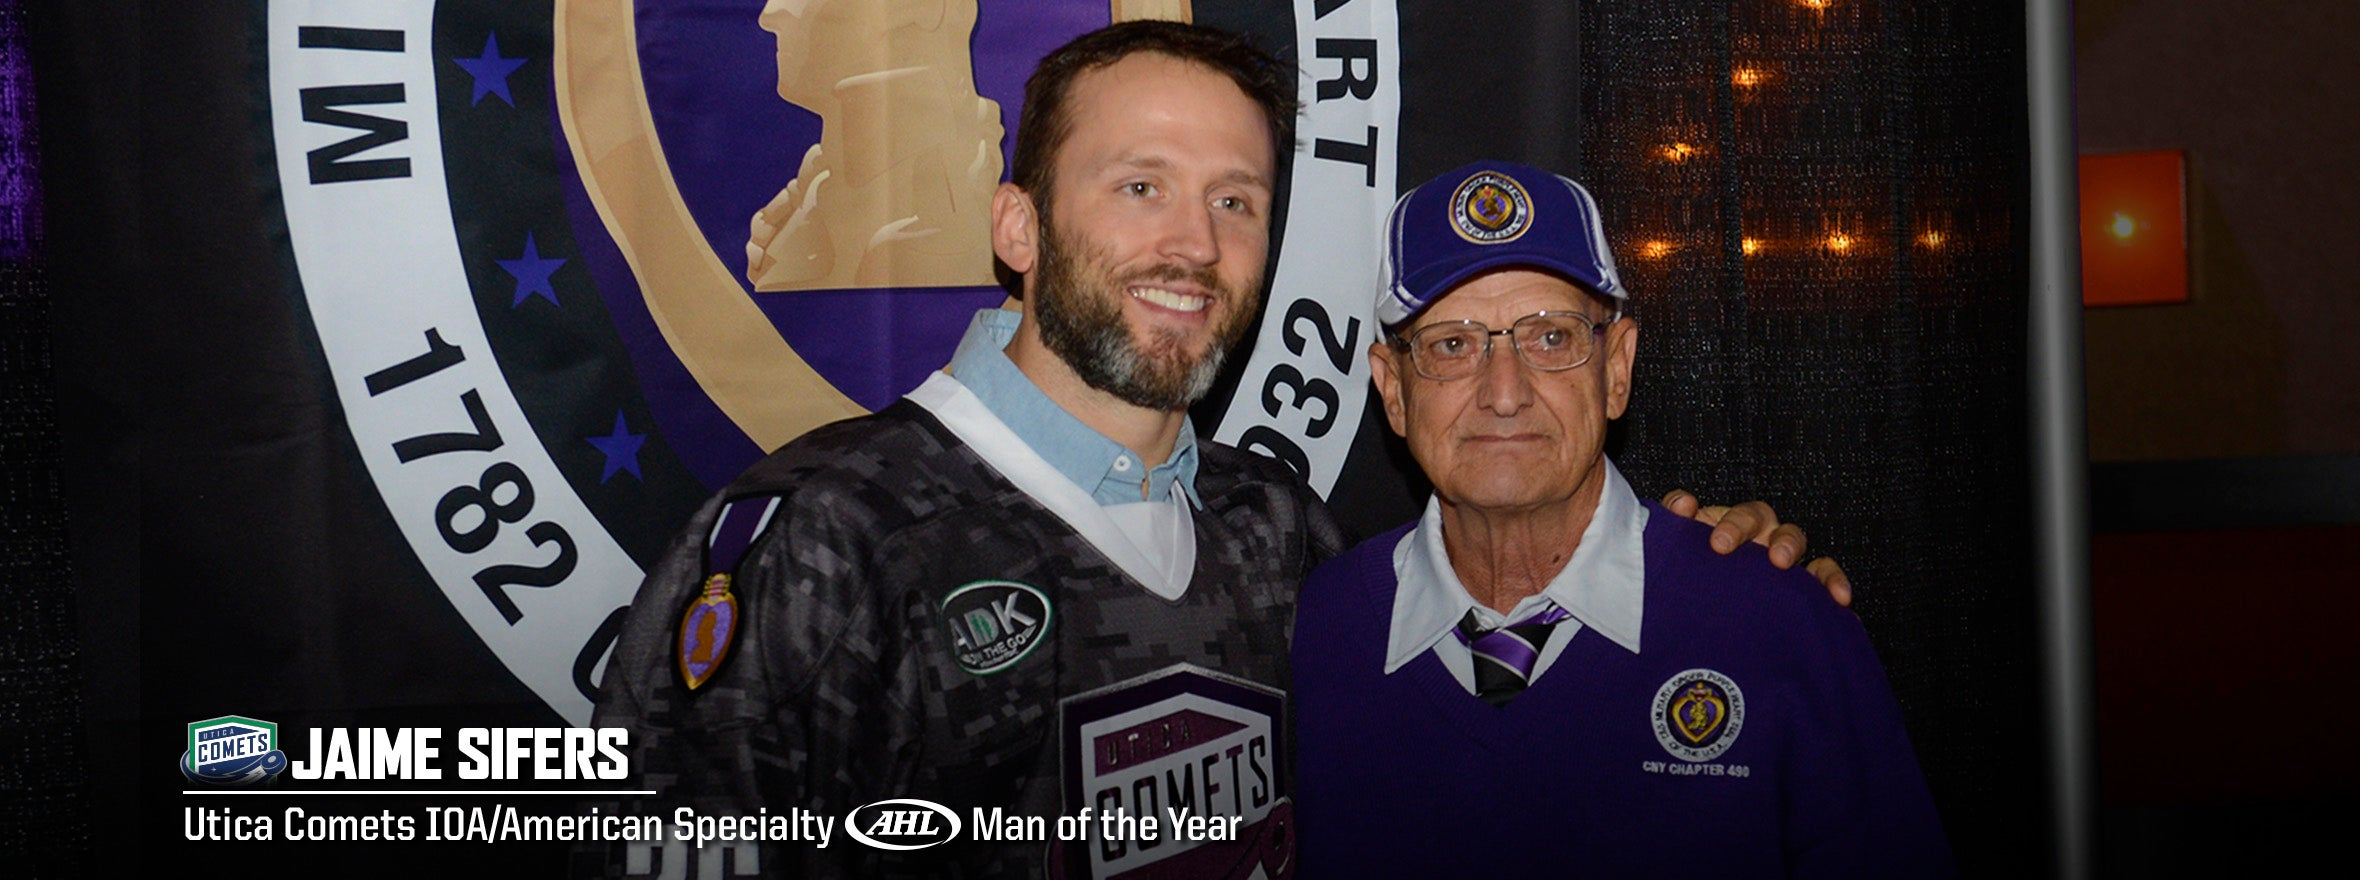 SIFERS NAMED COMETS MAN OF THE YEAR